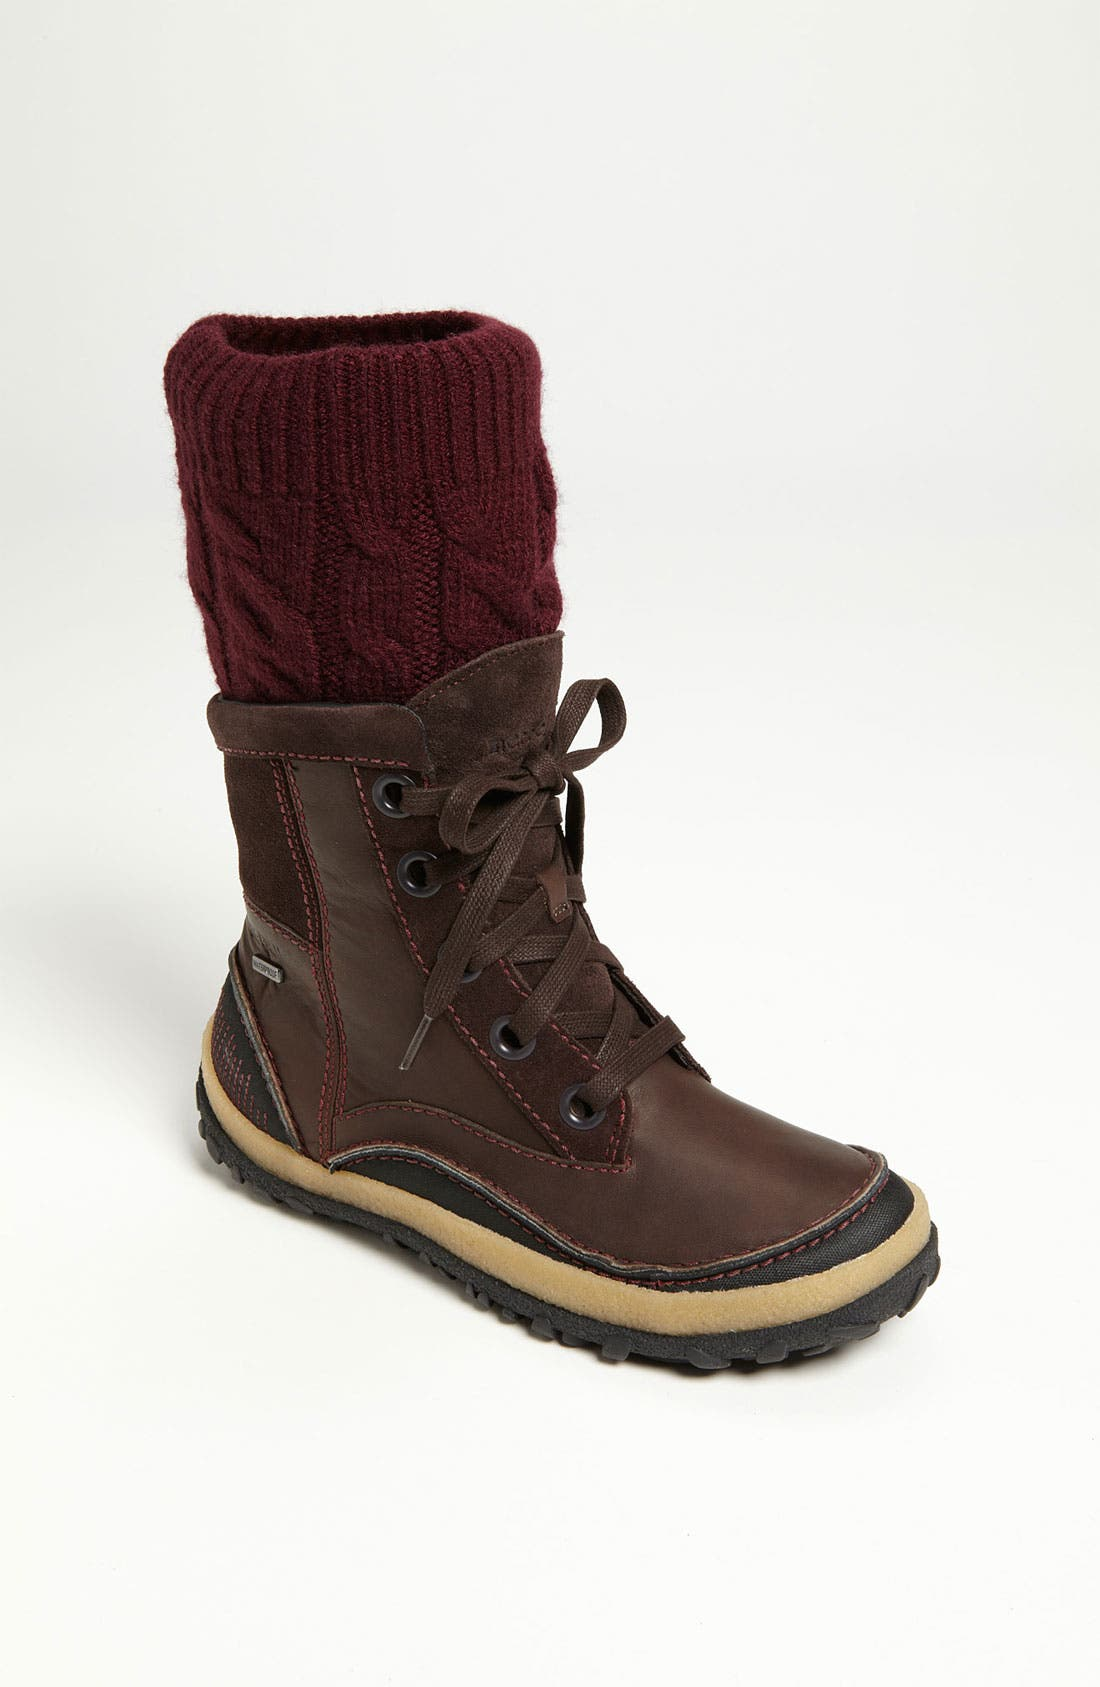 Main Image - Merrell 'Dauphine' Waterproof Boot